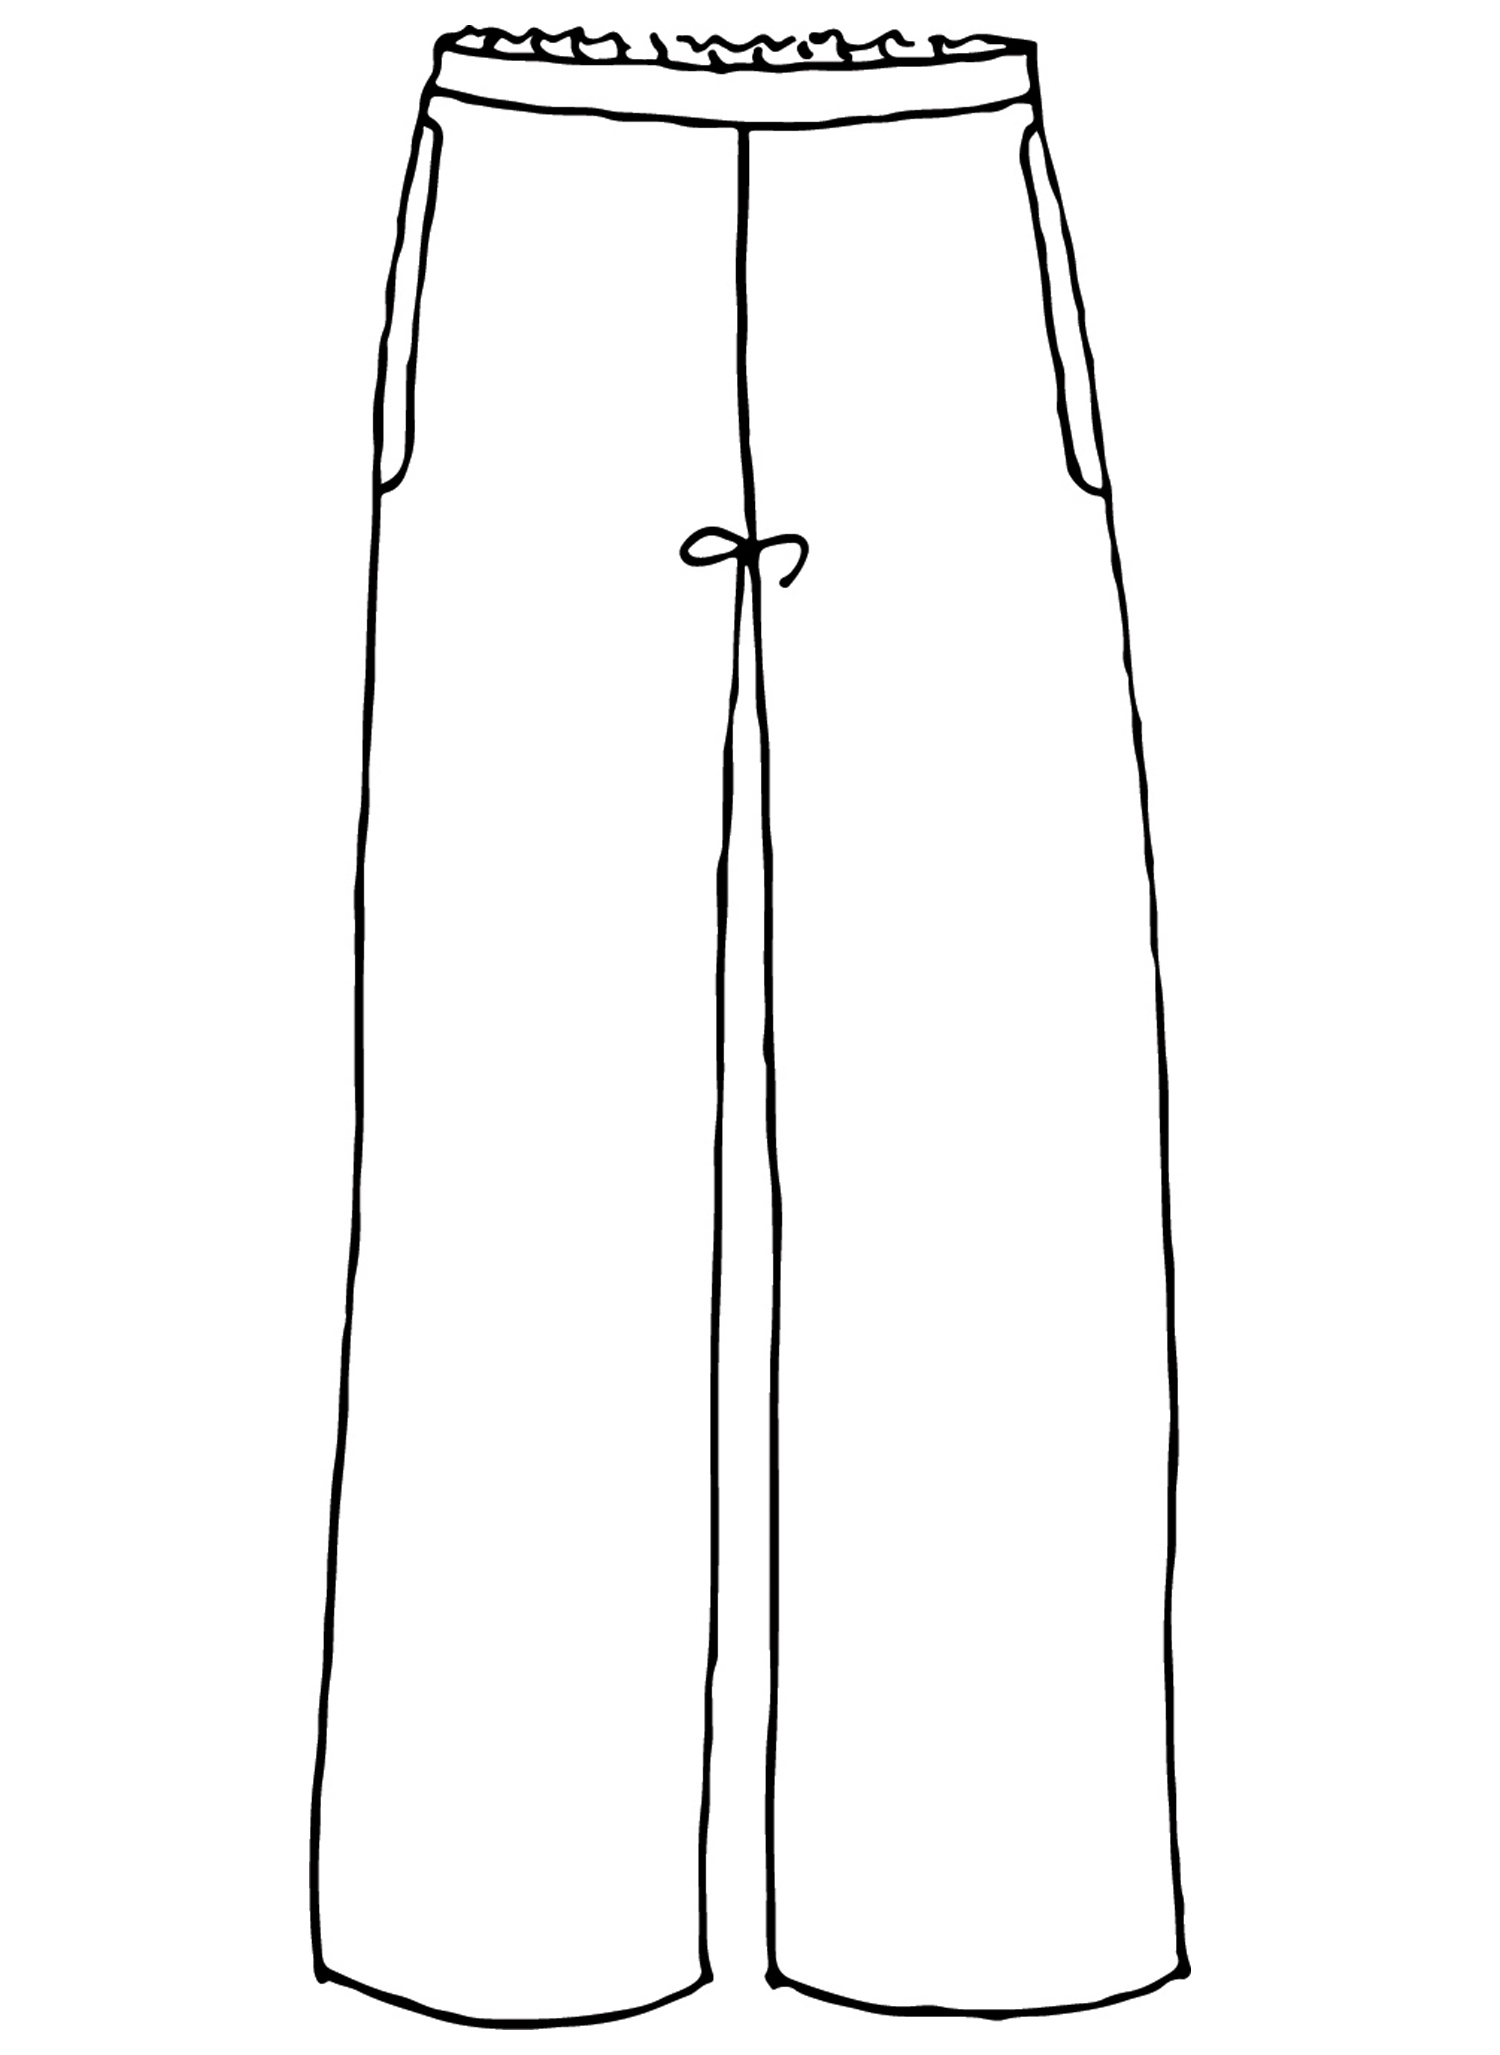 Refreshed Pant sketch image